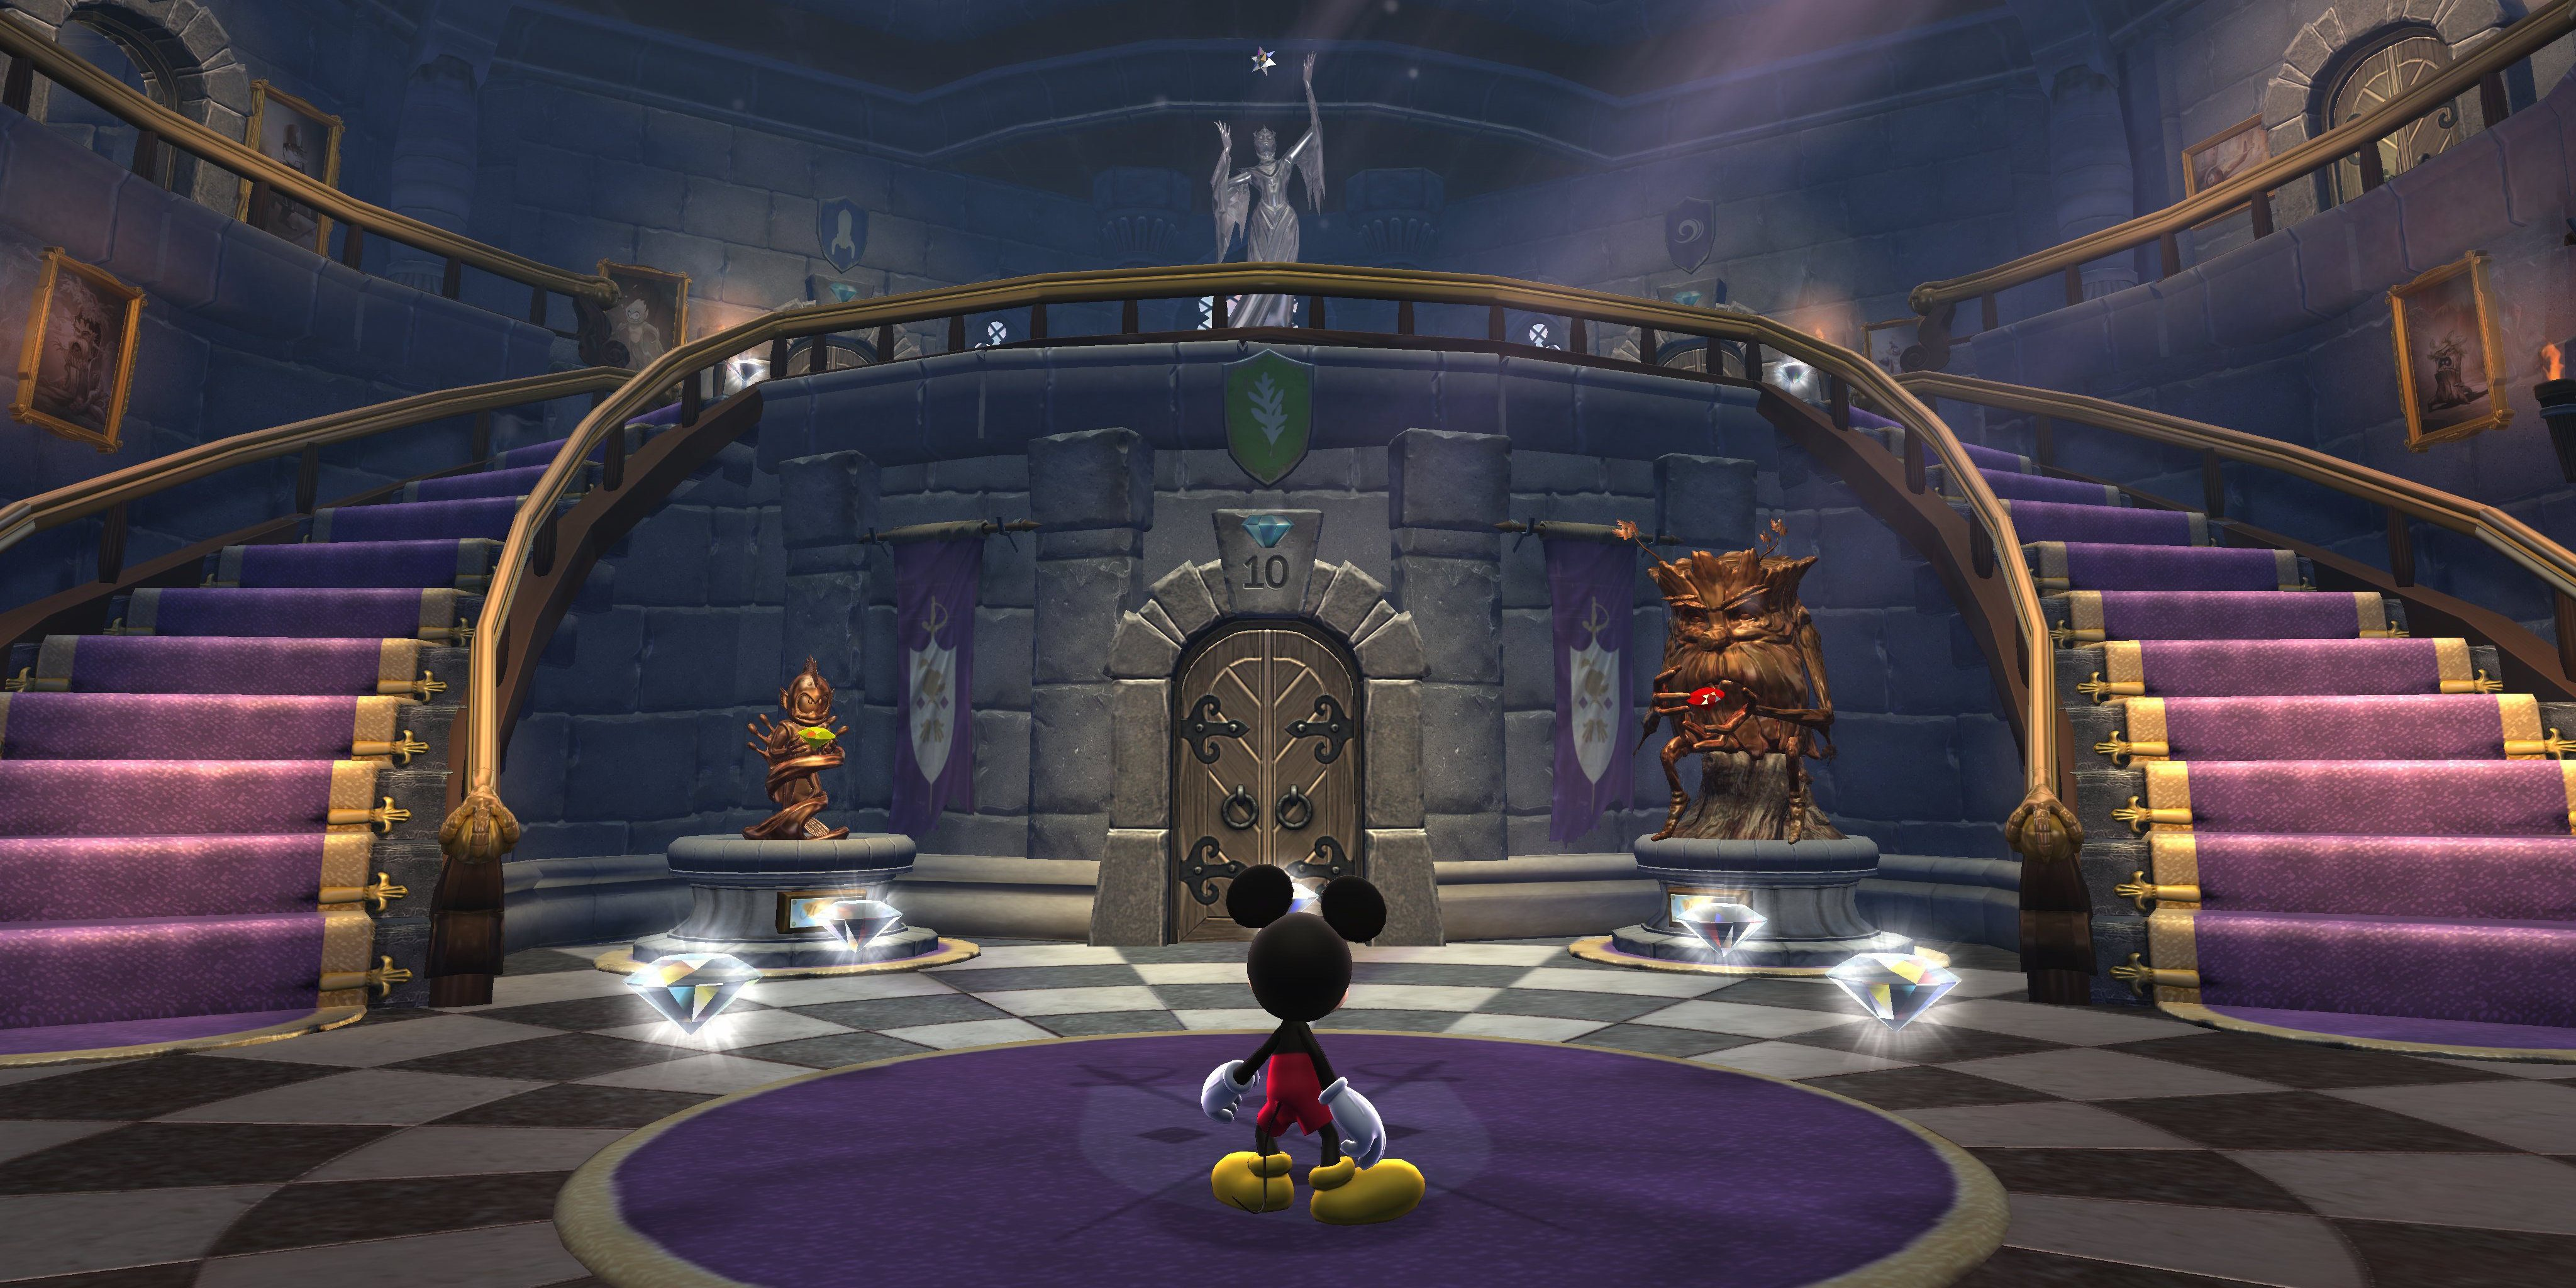 castle-of-illusion-starring-mickey-mouse-1